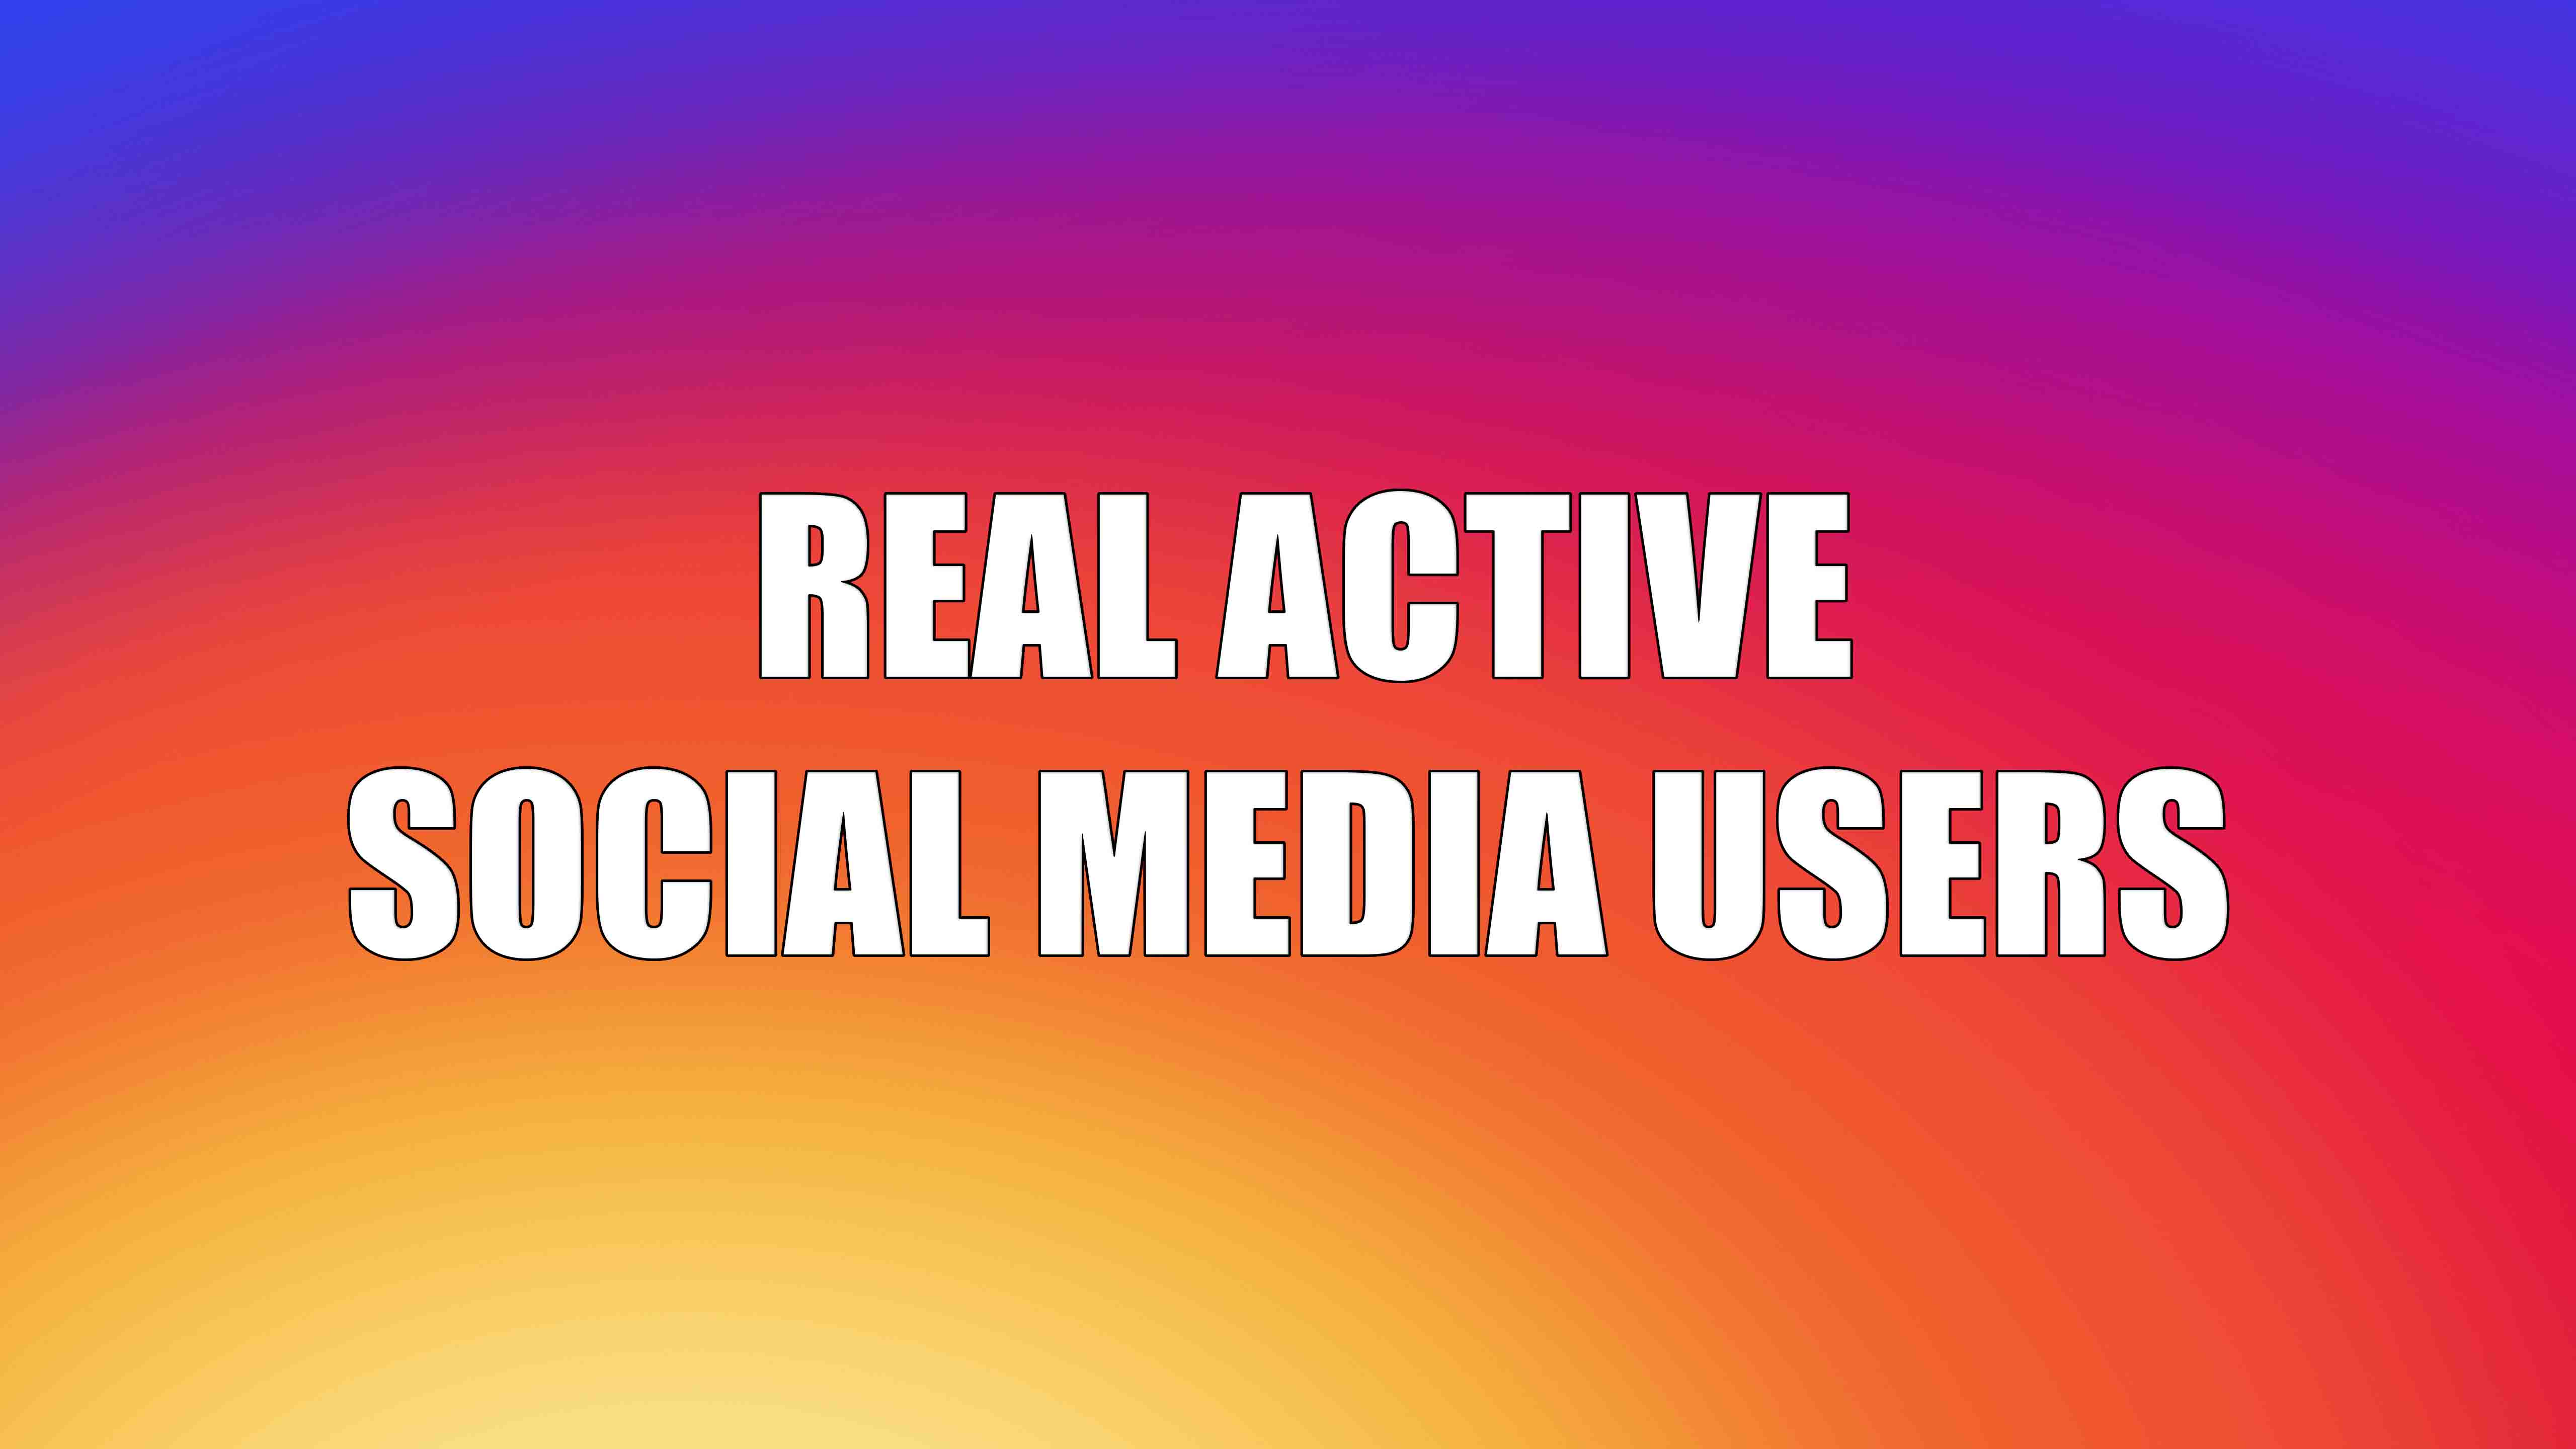 Real active social media users